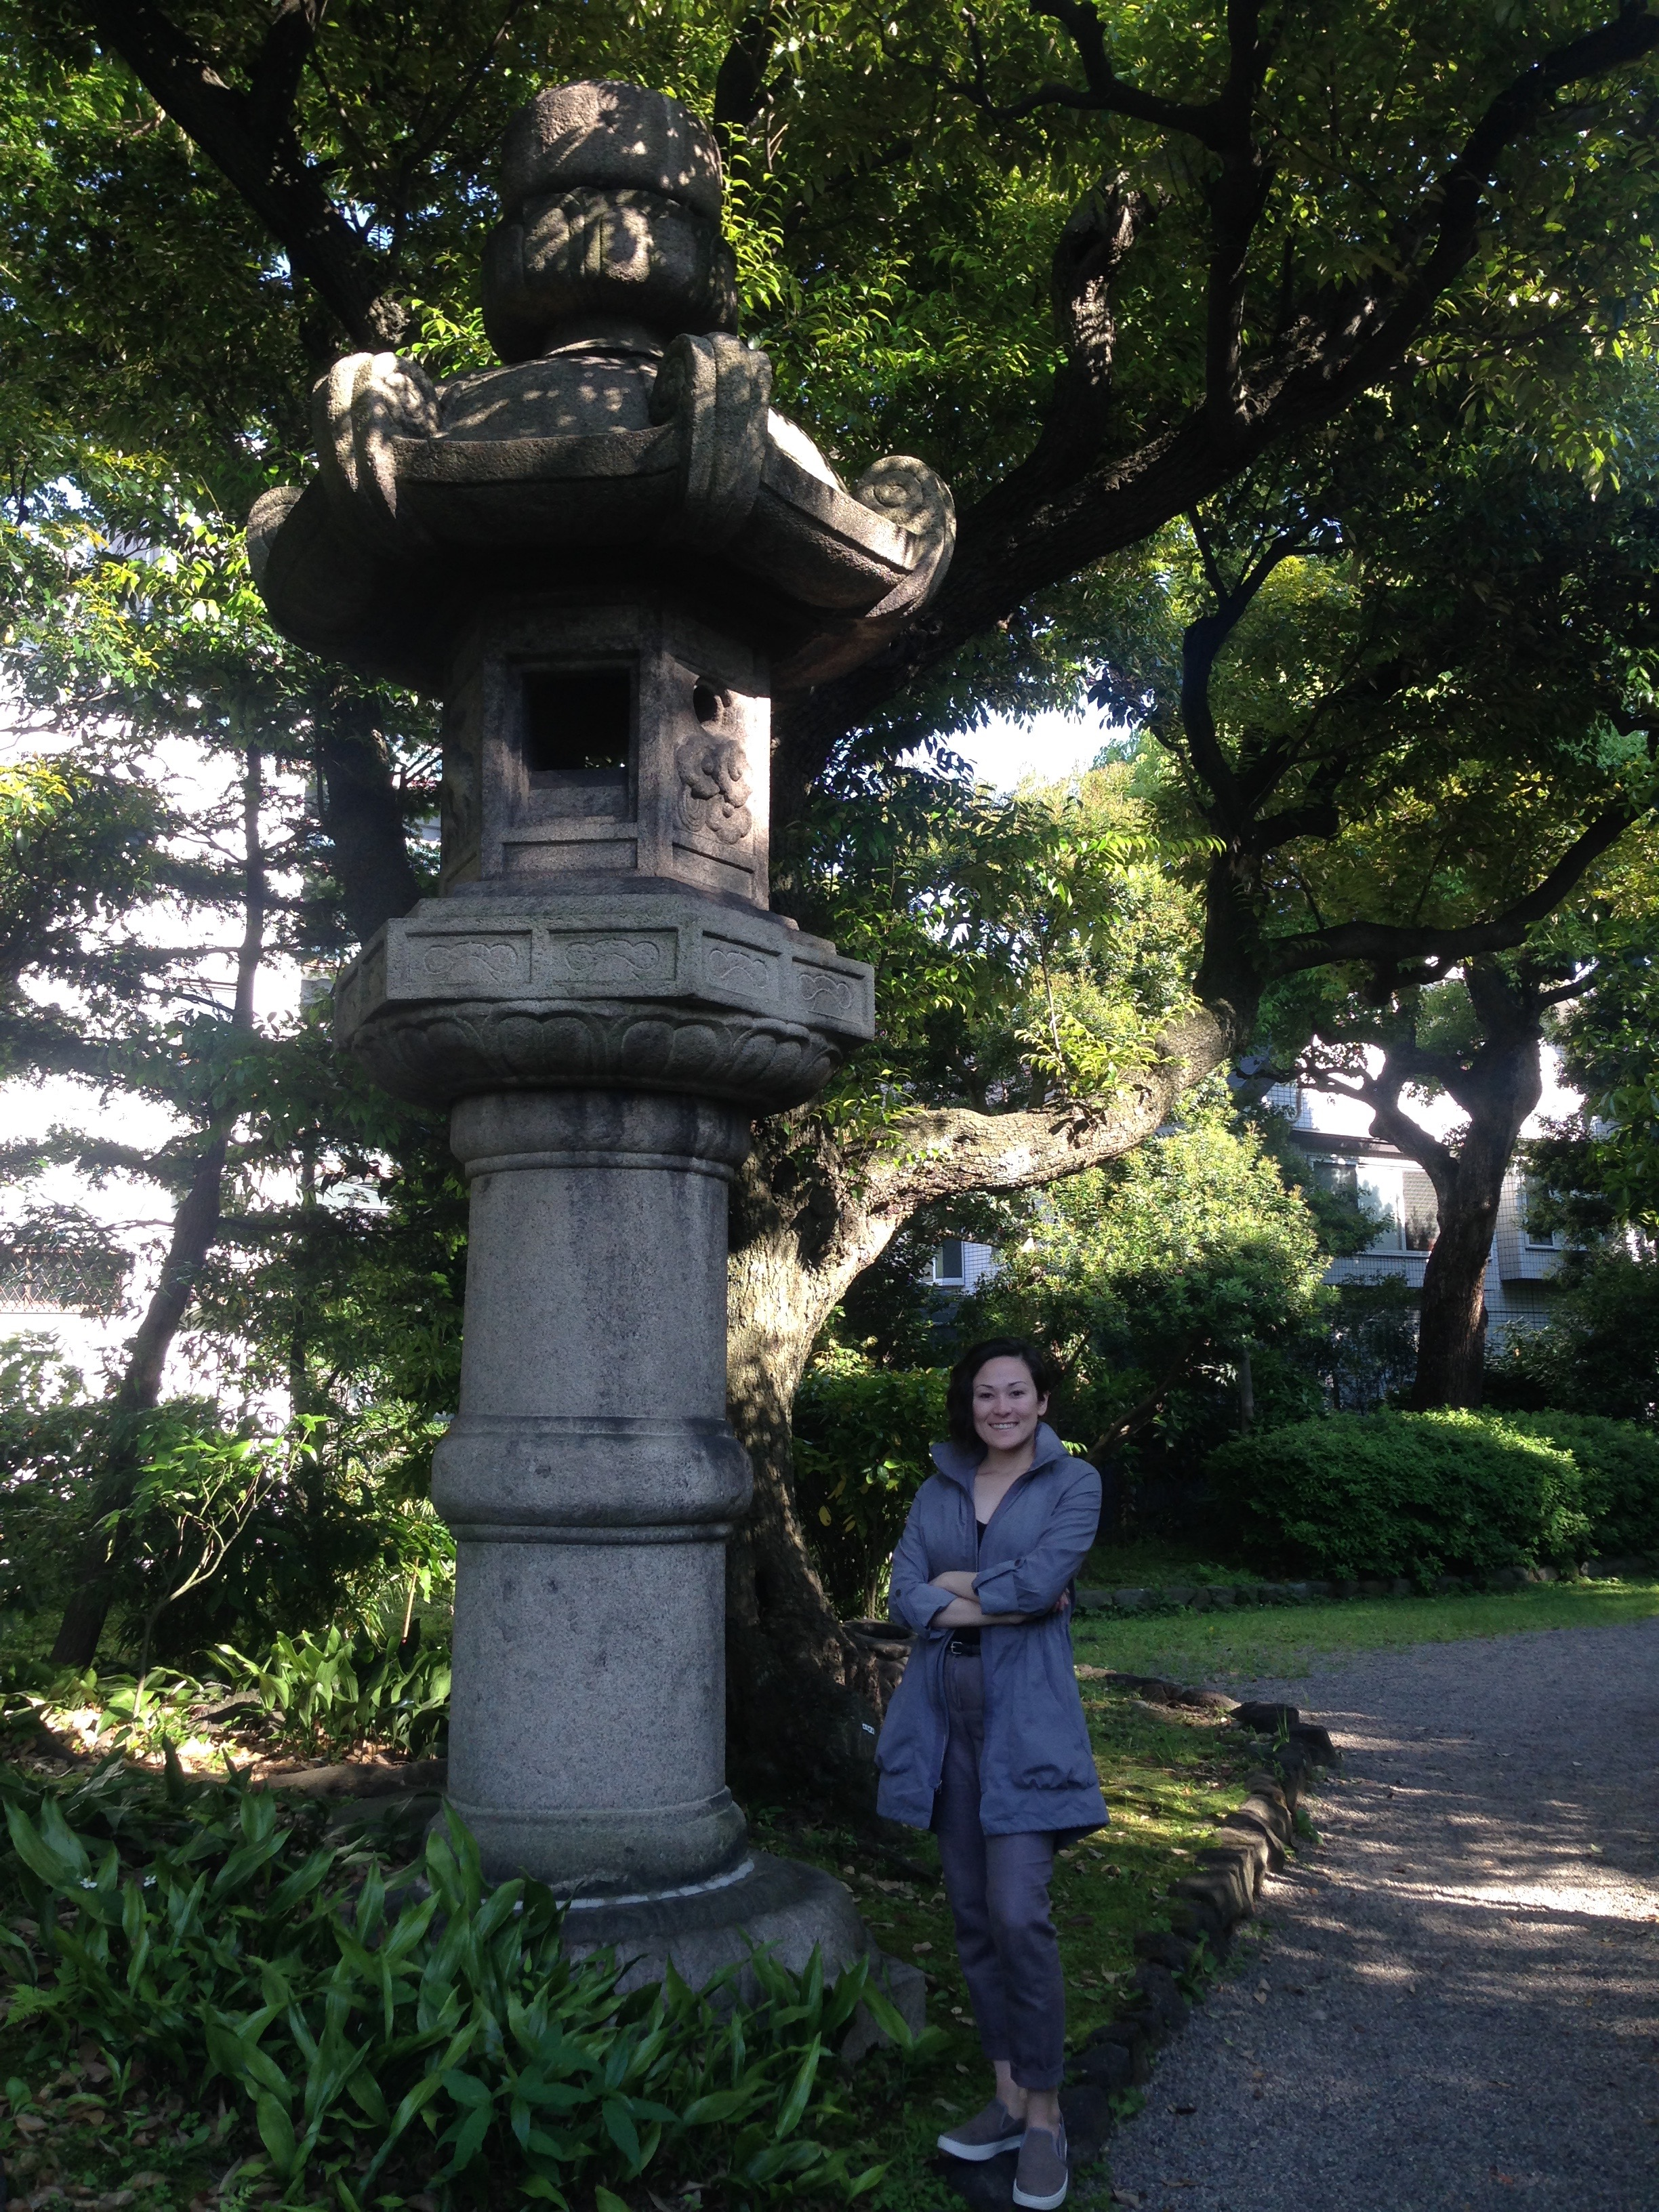 Me next to a HUGE lamp on our way to the sumo shrine.